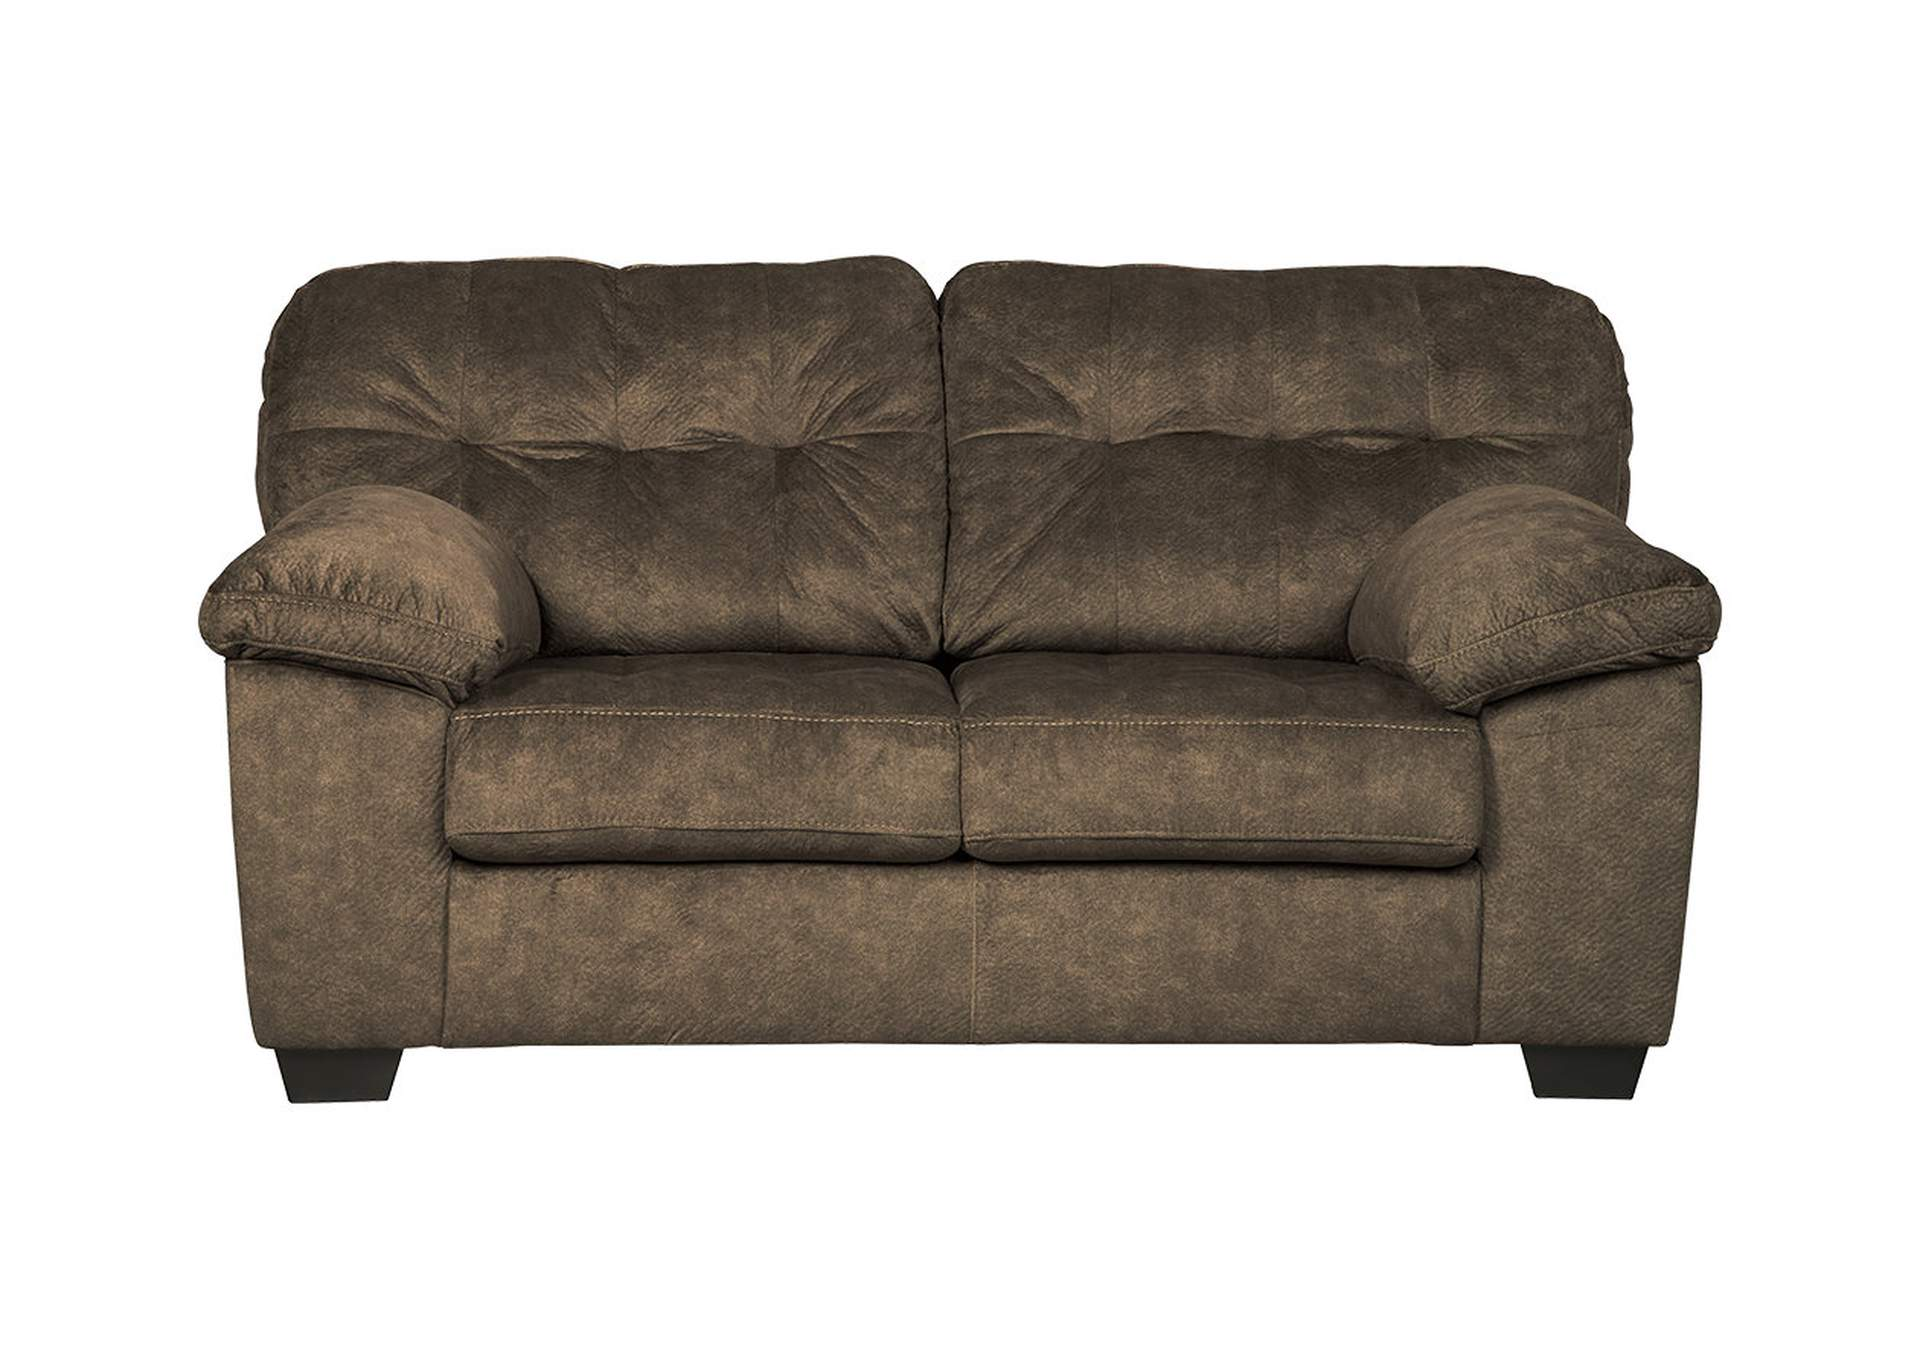 Accrington Earth Loveseat,Signature Design By Ashley